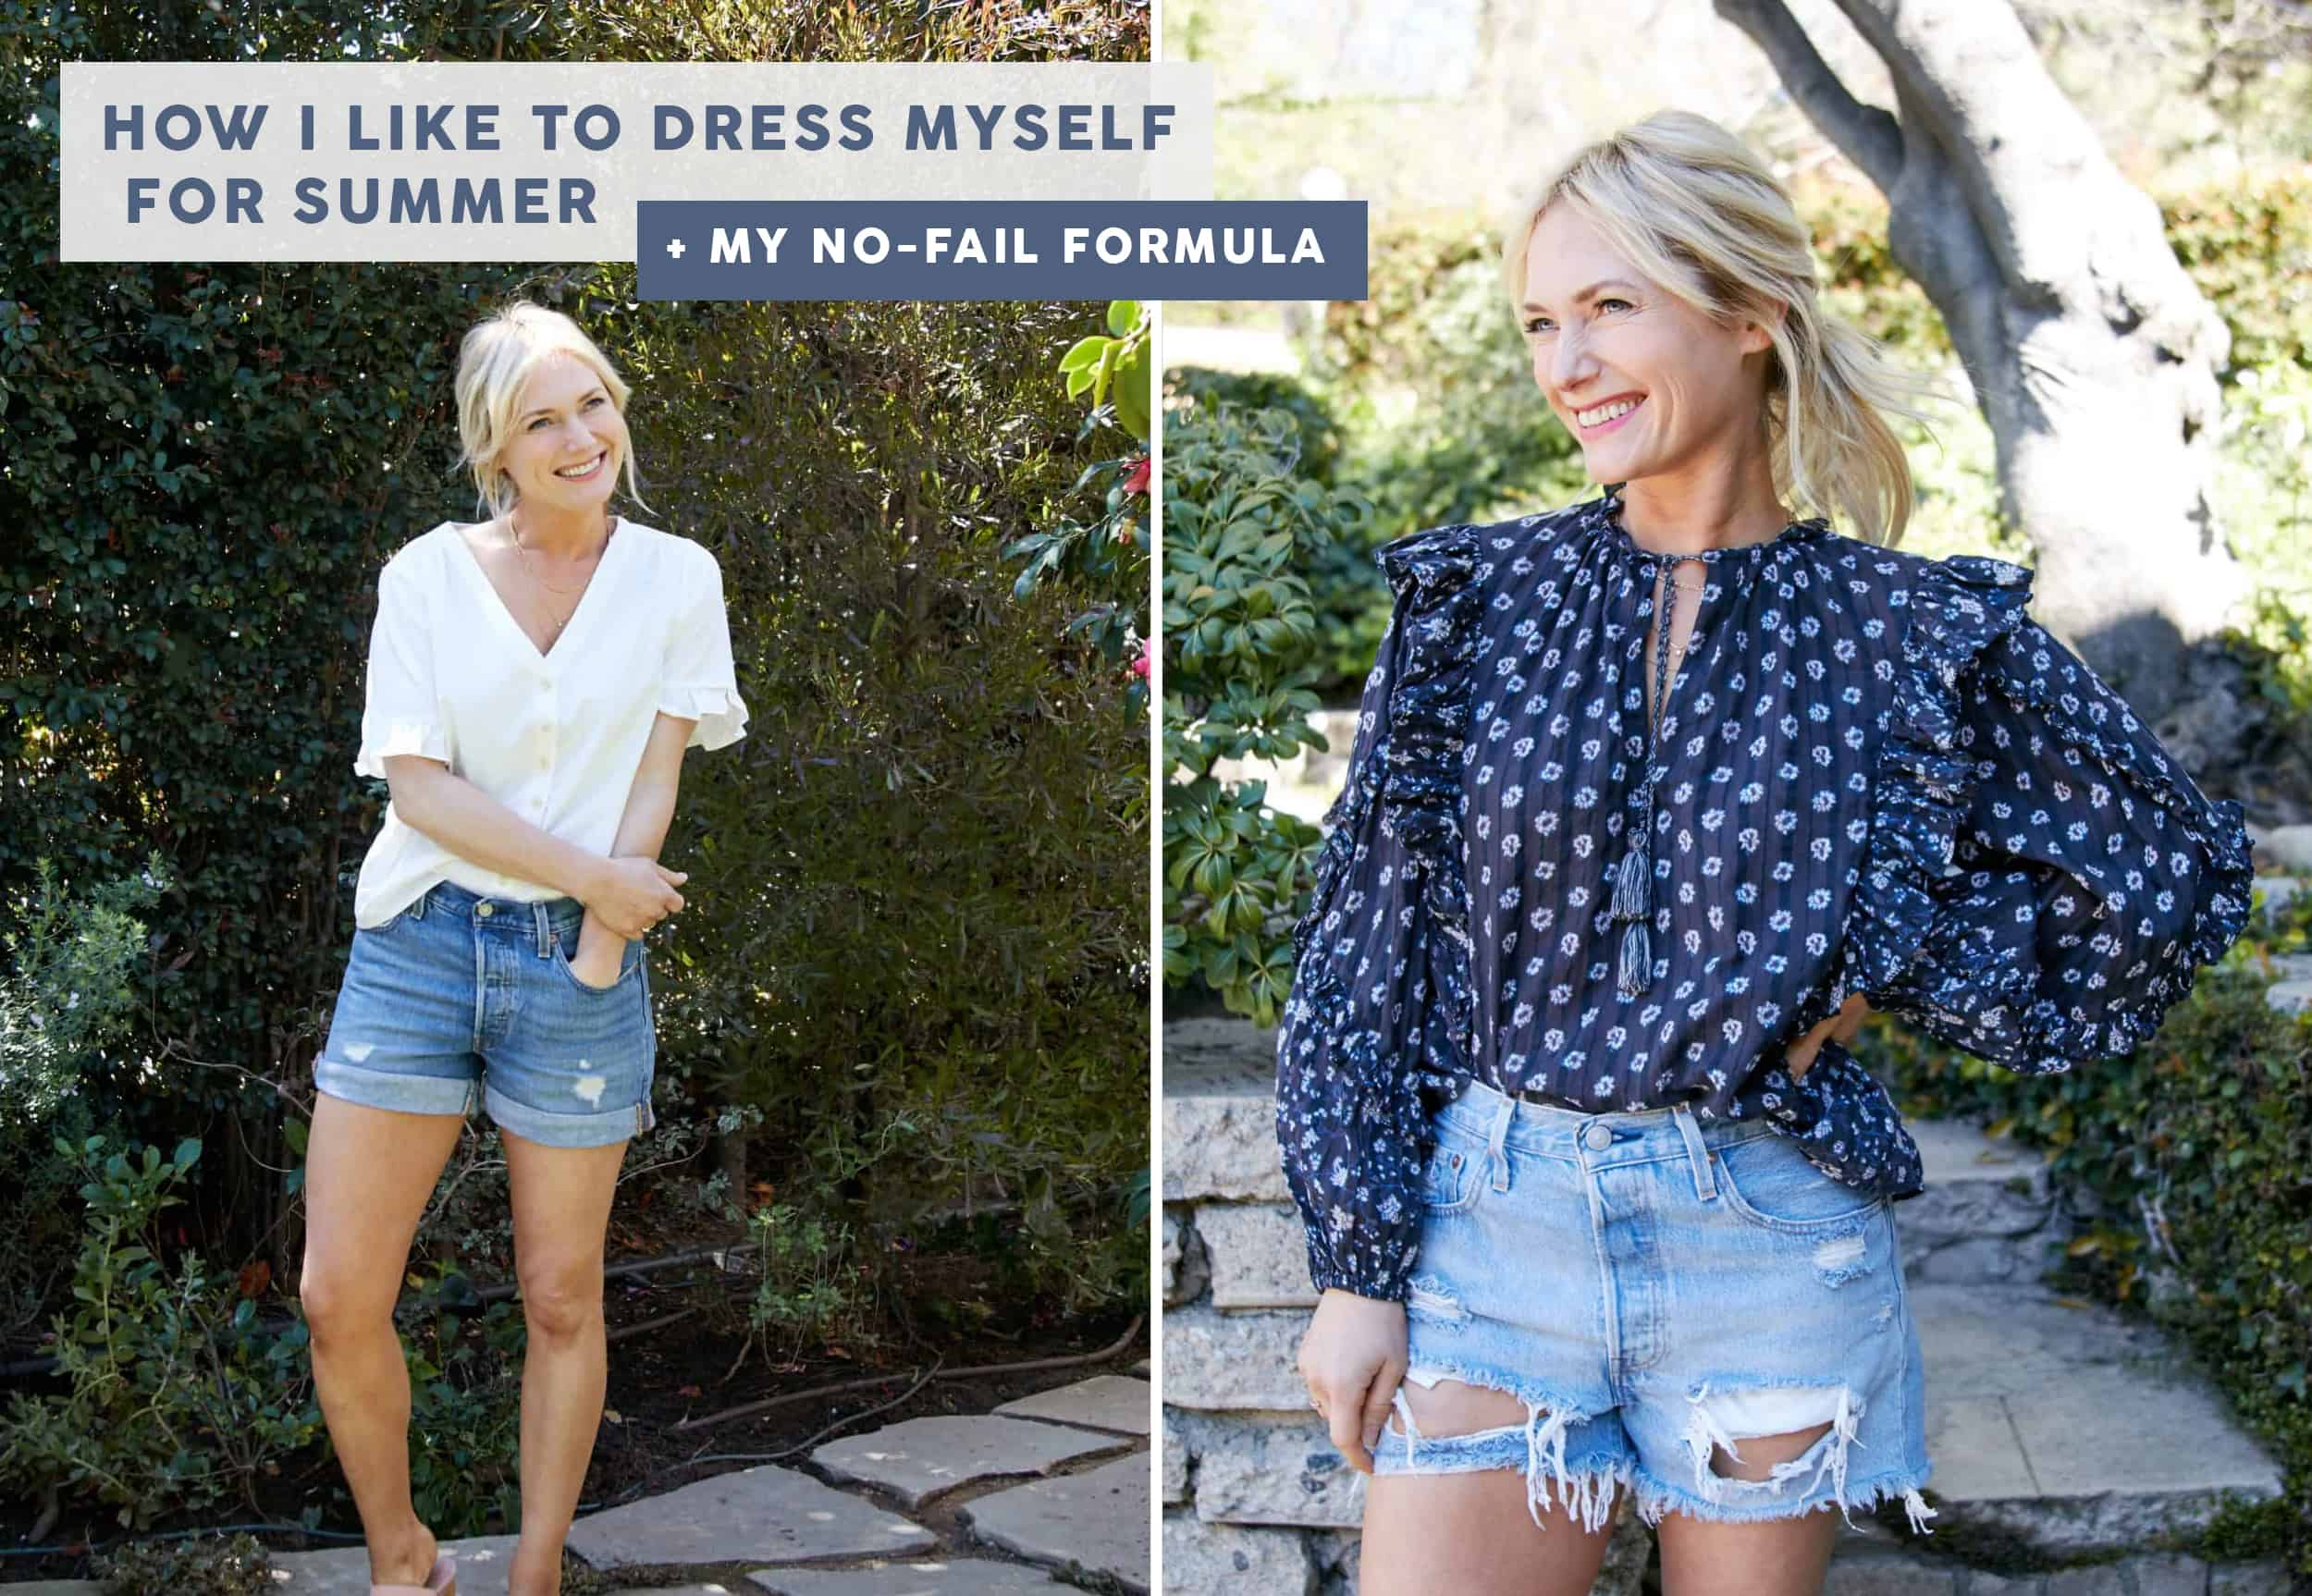 My Summer Uniform: The 3-5 Pieces I Love Wearing That Makes Getting Dressed SO Easy